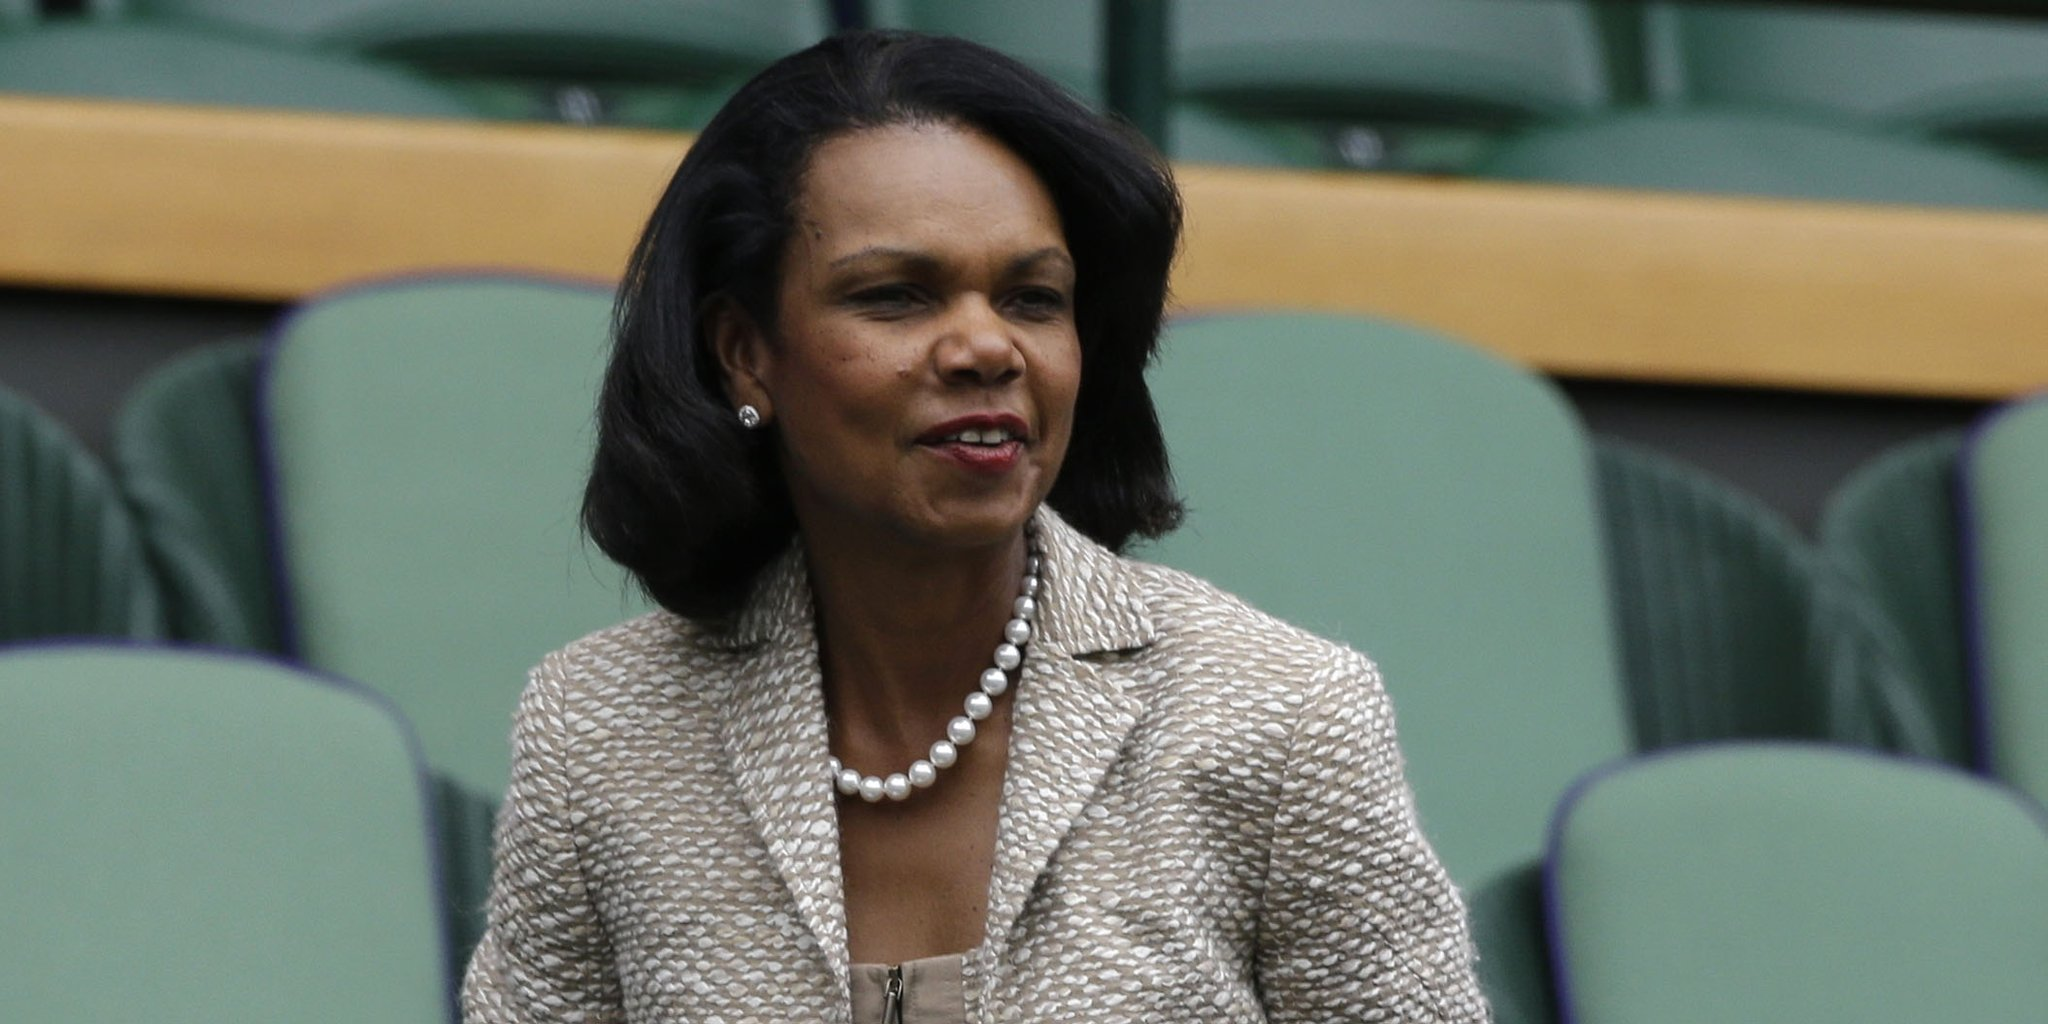 La finta notizia di Condoleezza Rice intervistata come HC dei Browns